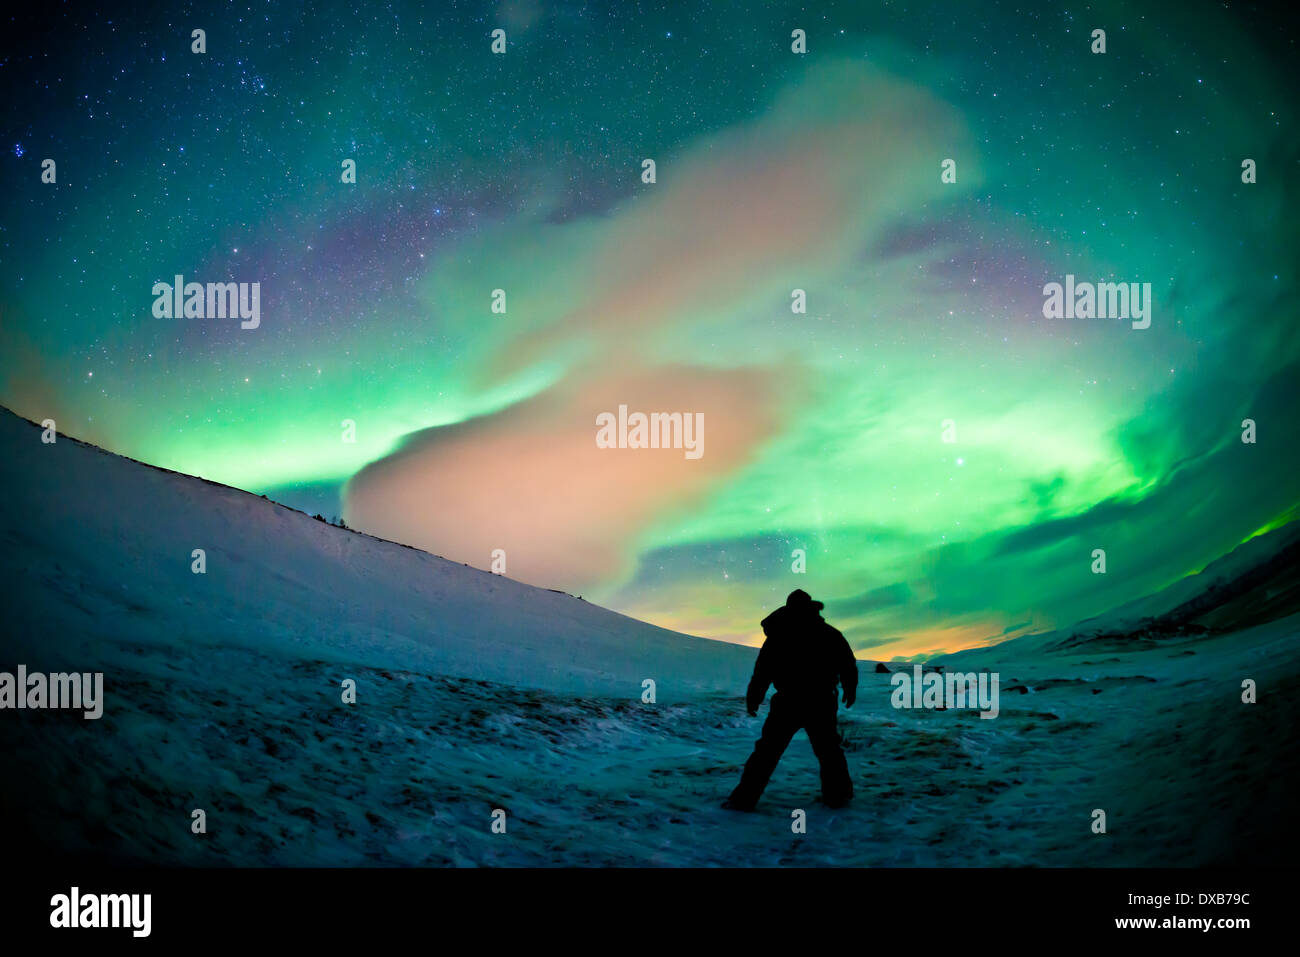 A sky filling Northern Lights (aurora borealis) display over Northern Sweden. High ISO - contains noise. - Stock Image